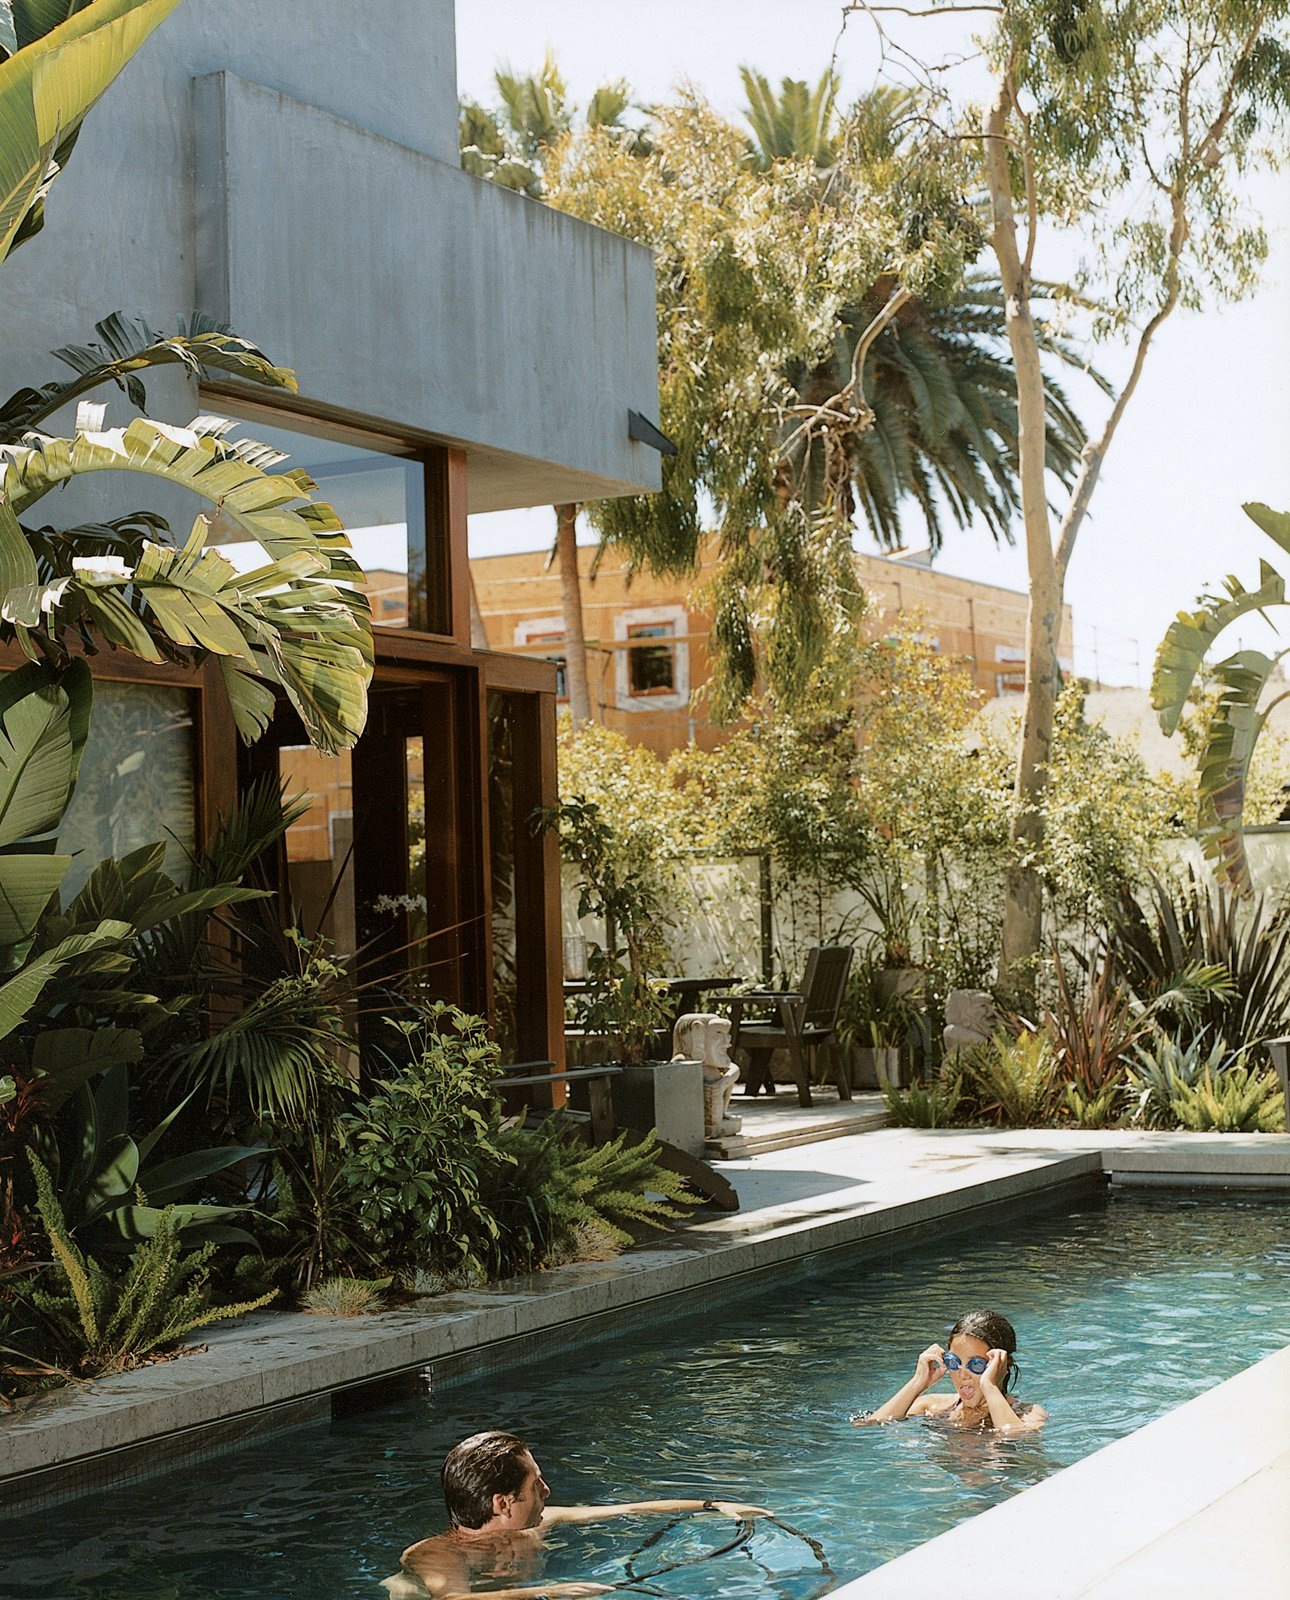 Sophie and Colin enjoy their new pool, the only non-solar-powered portion of their home in Venice, California, created by their father, architect David Hertz. Read the full article here. Plants by Nikki Webster